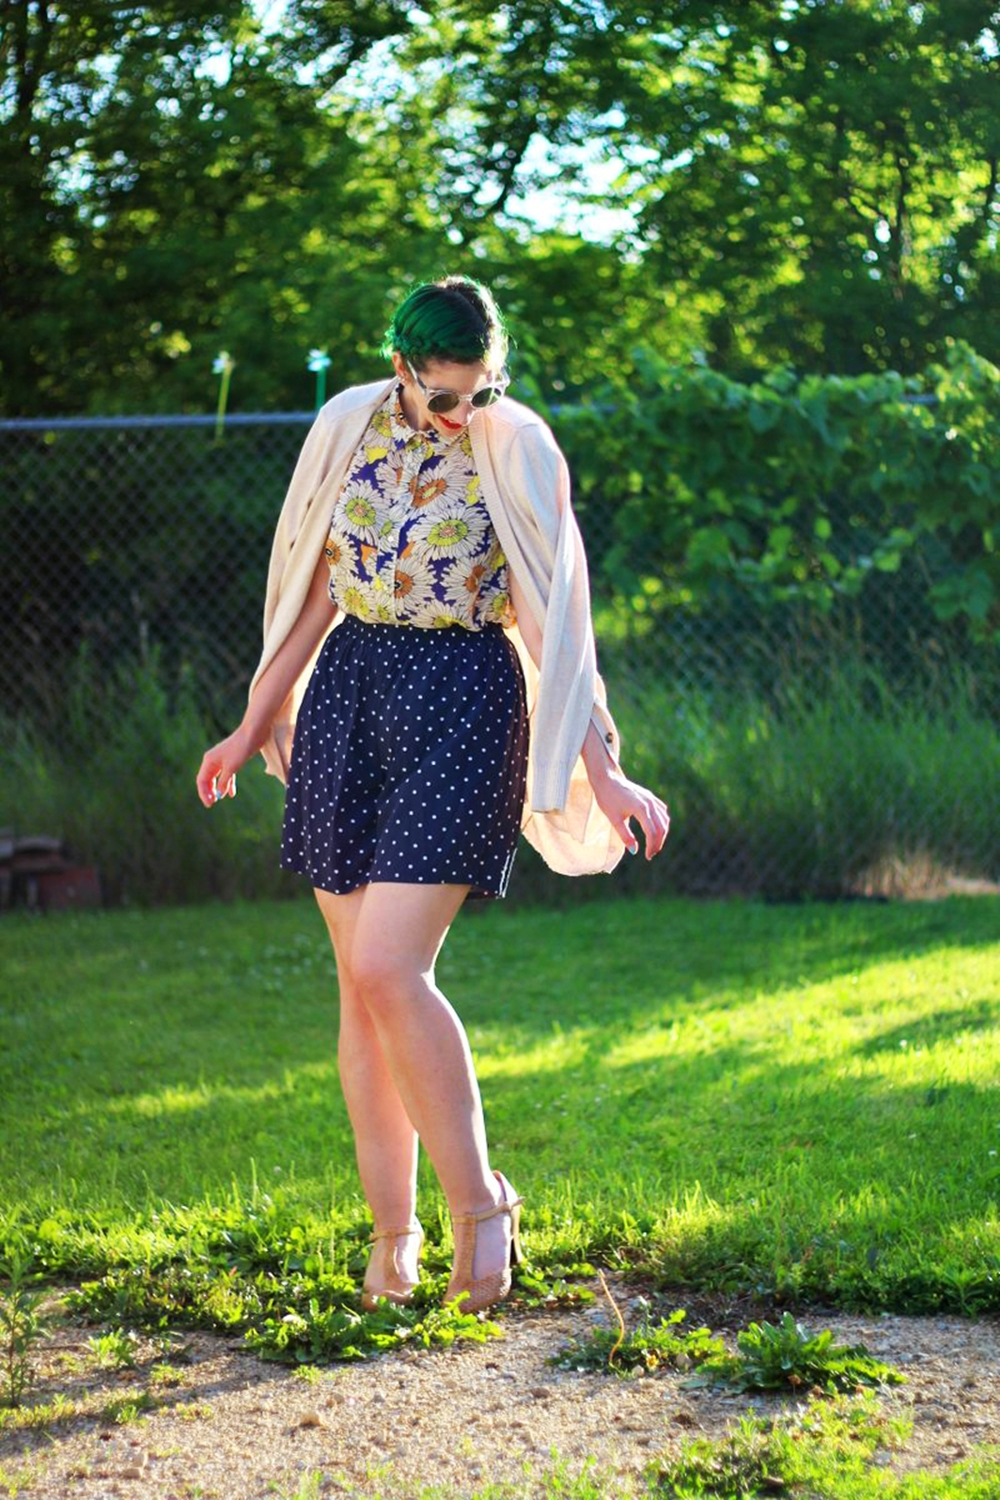 sunglasses-green-hair-vintage-floral-thrifted-summer-outfit-04